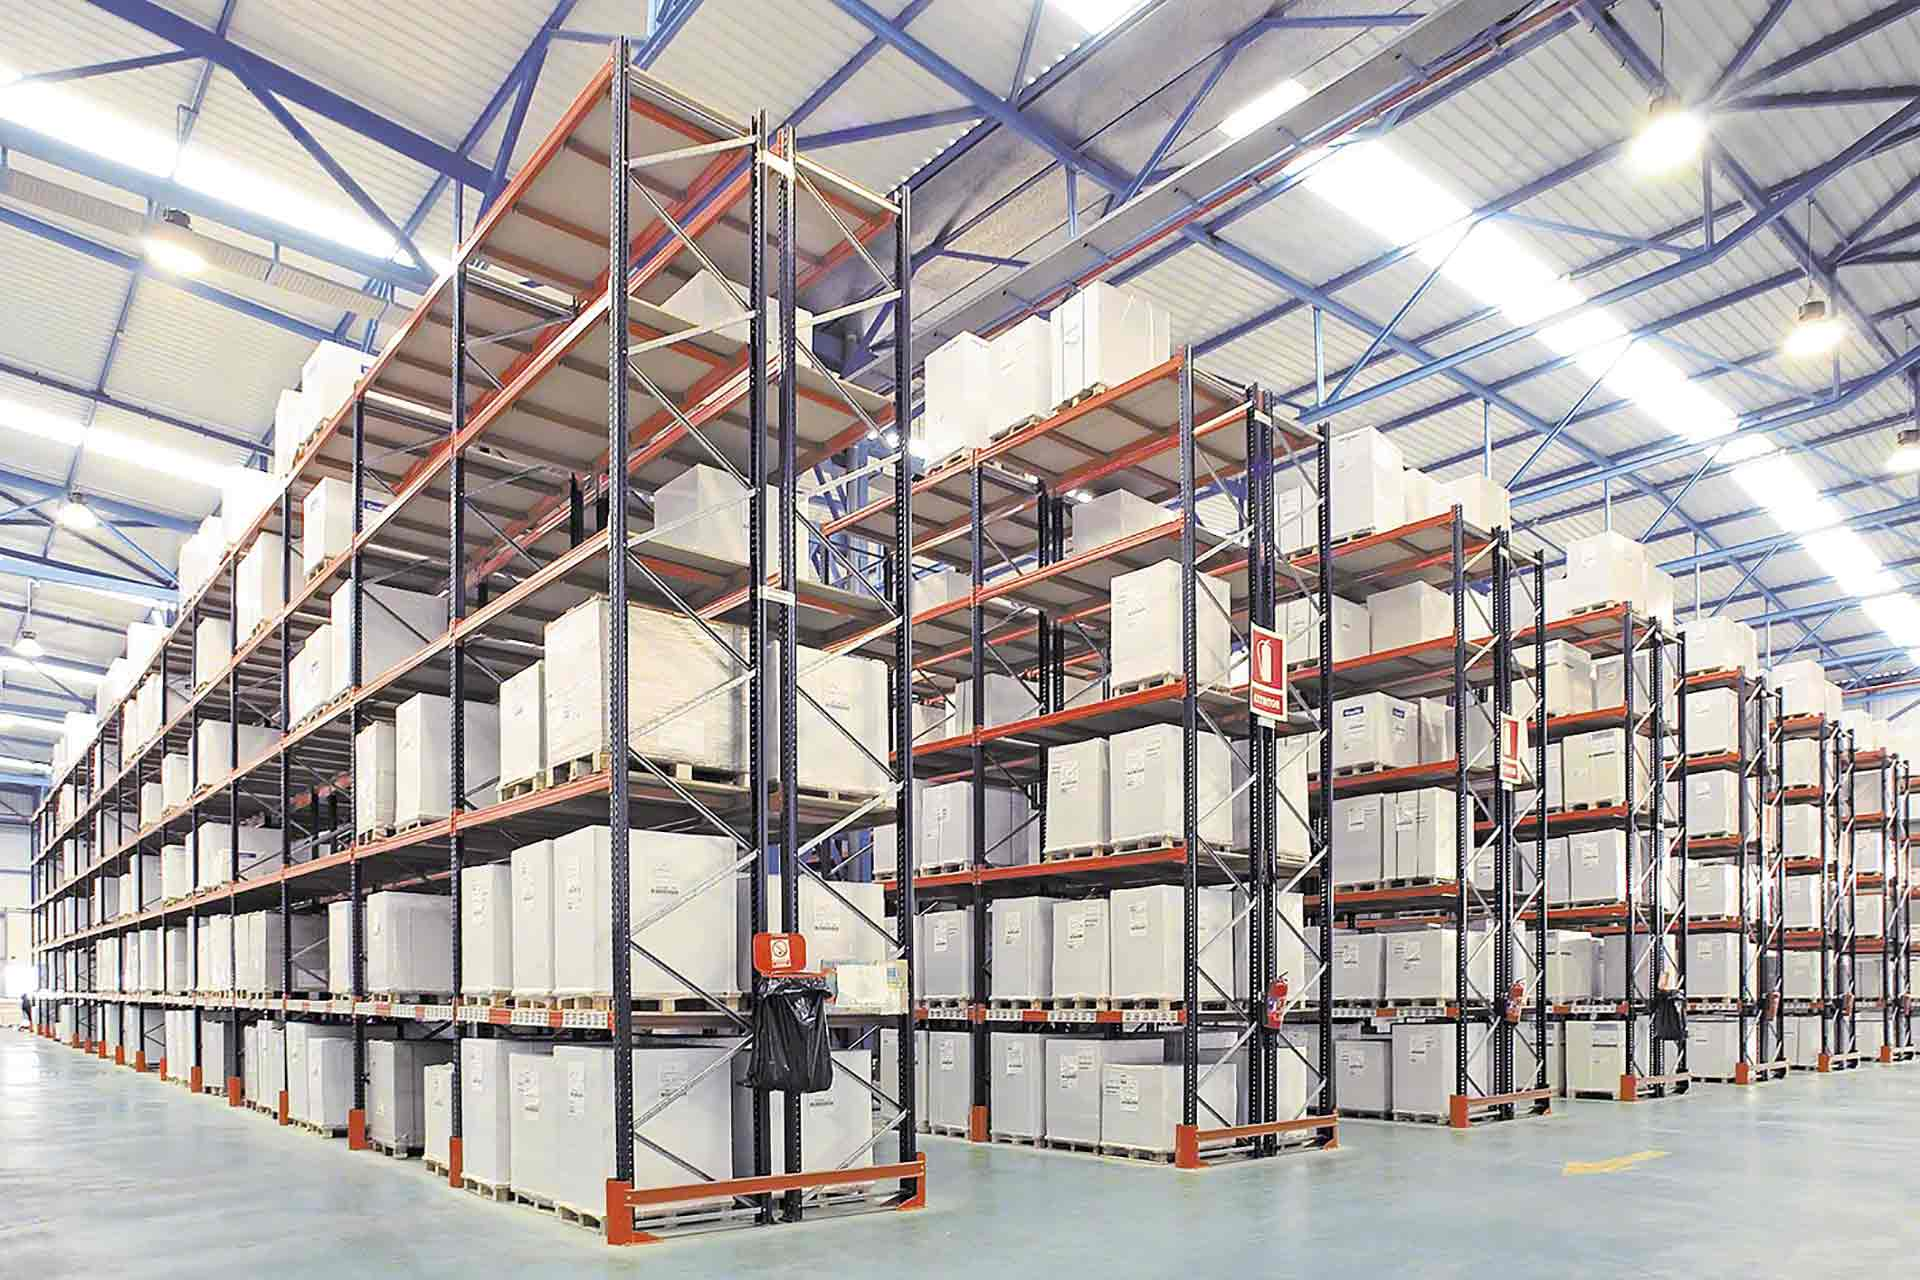 Warehouse pallet racking shelving mezzanine floors and for Warehouse racking layout software free